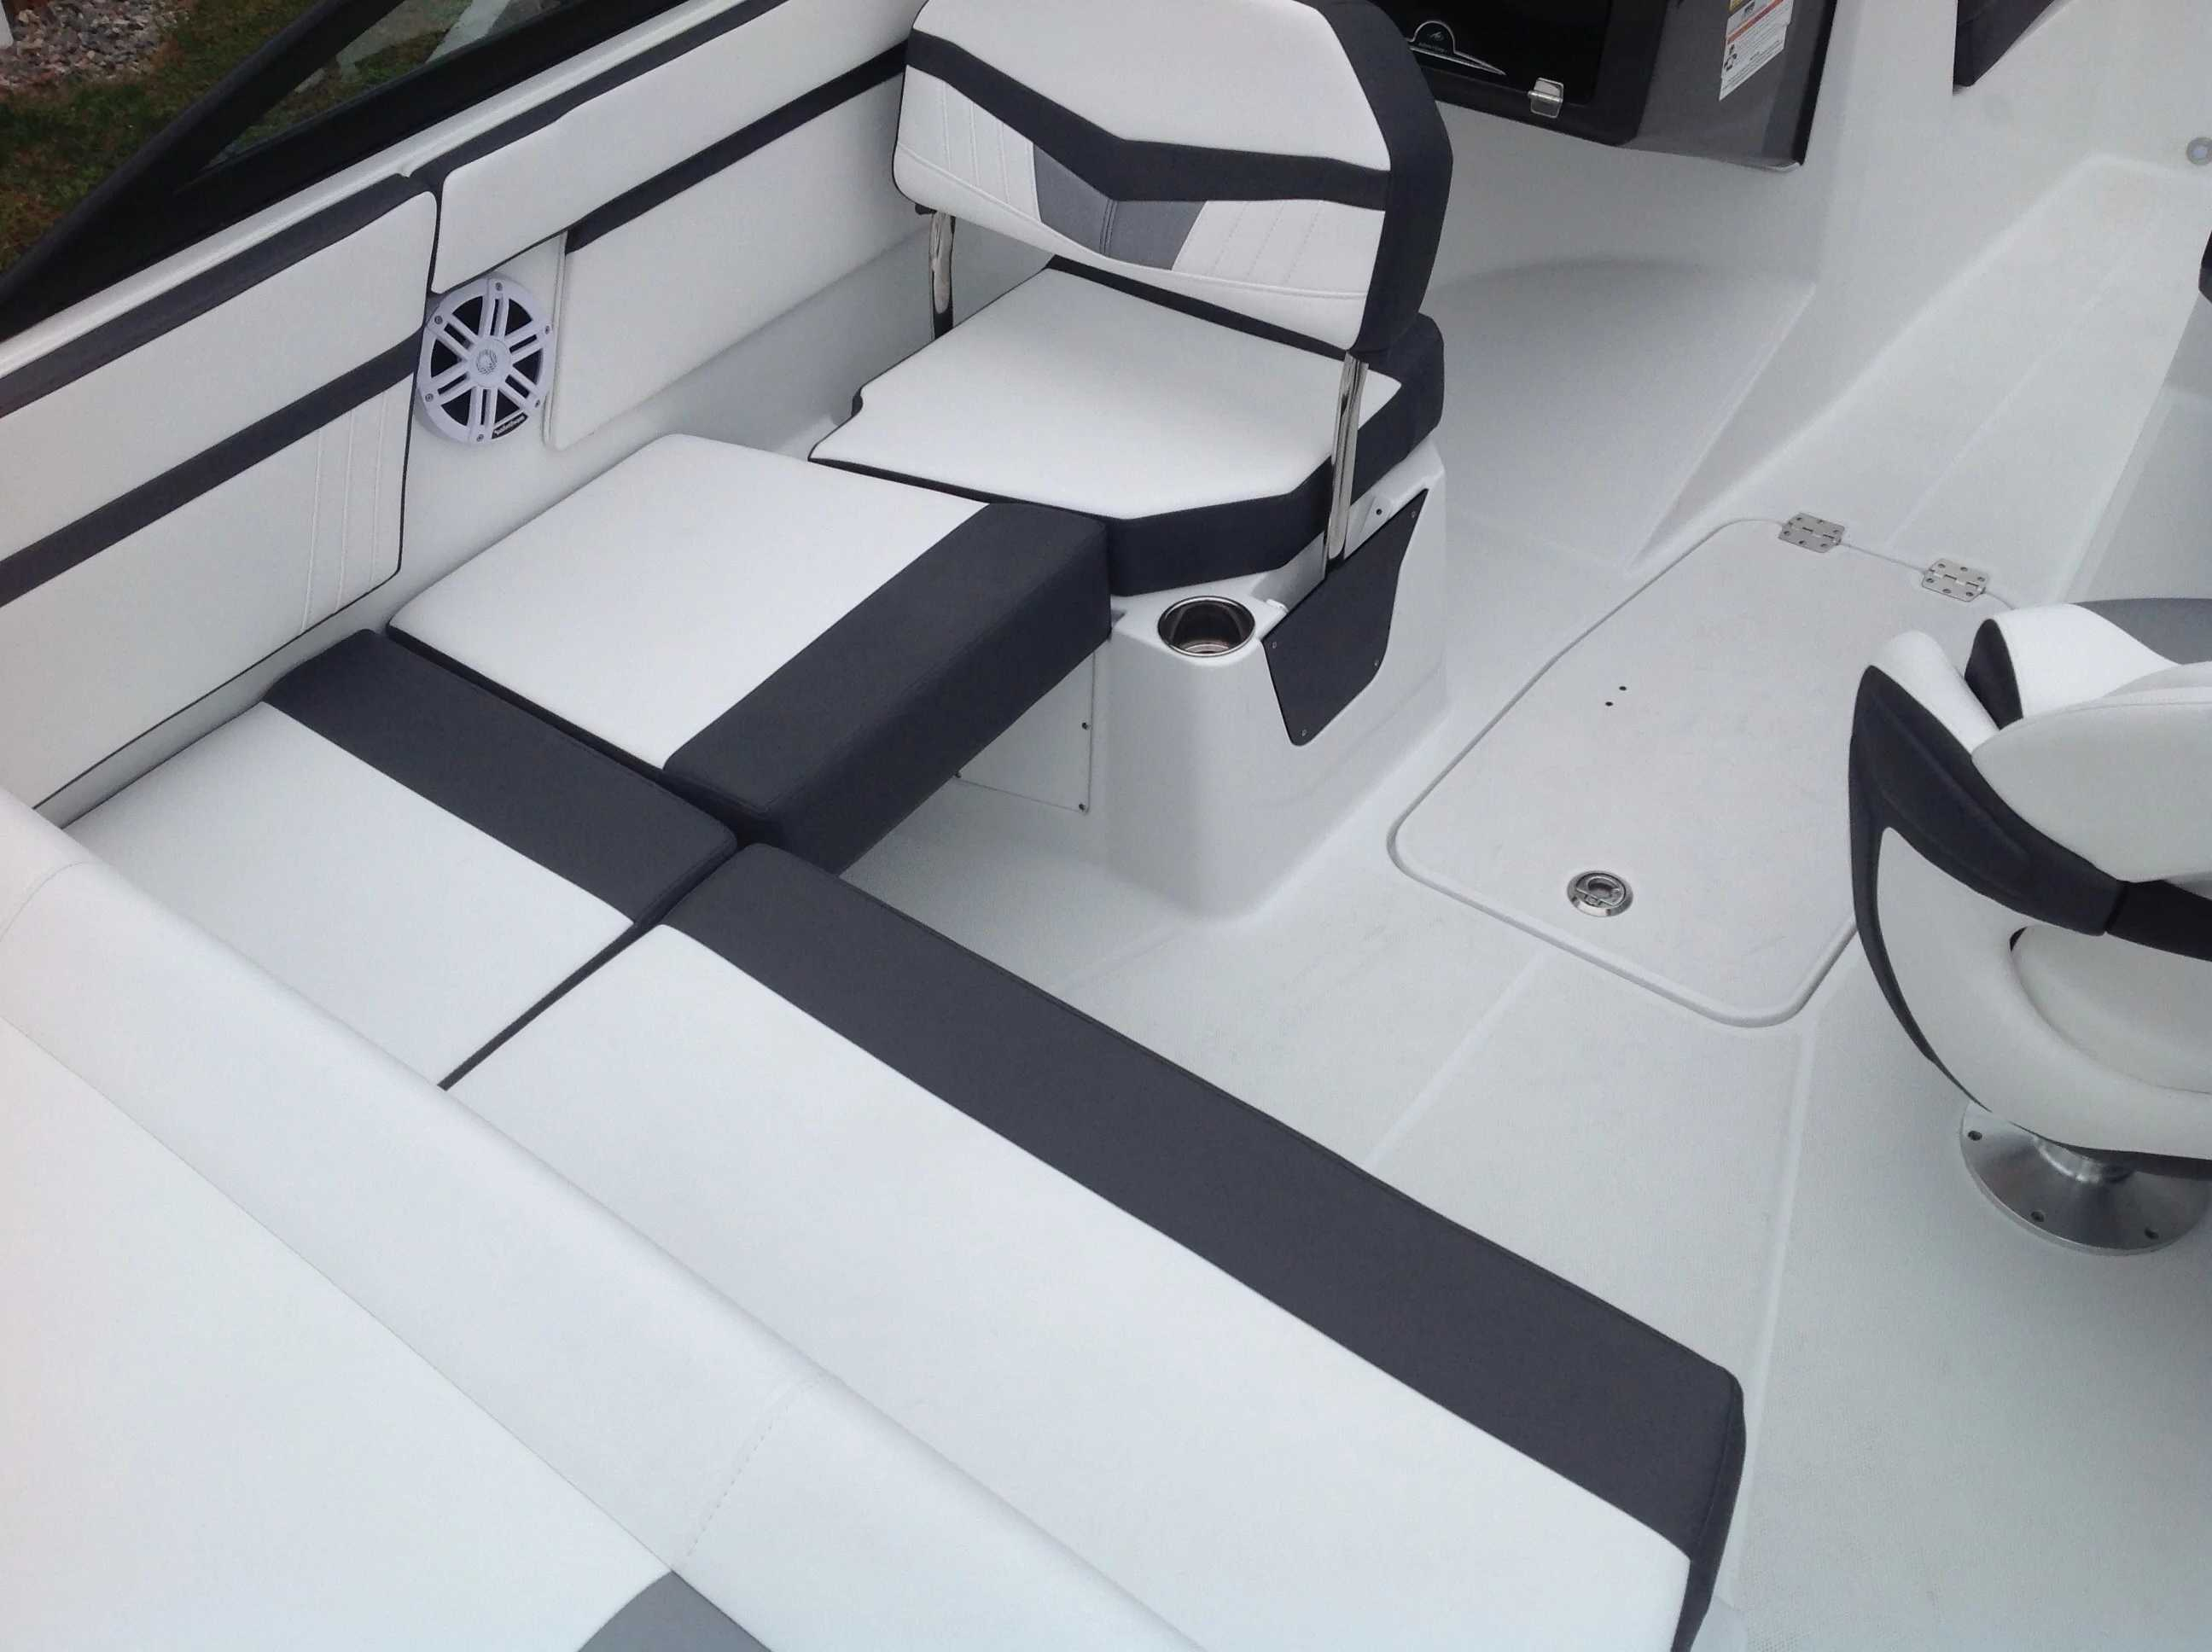 2021 Monterey boat for sale, model of the boat is M20 & Image # 9 of 13